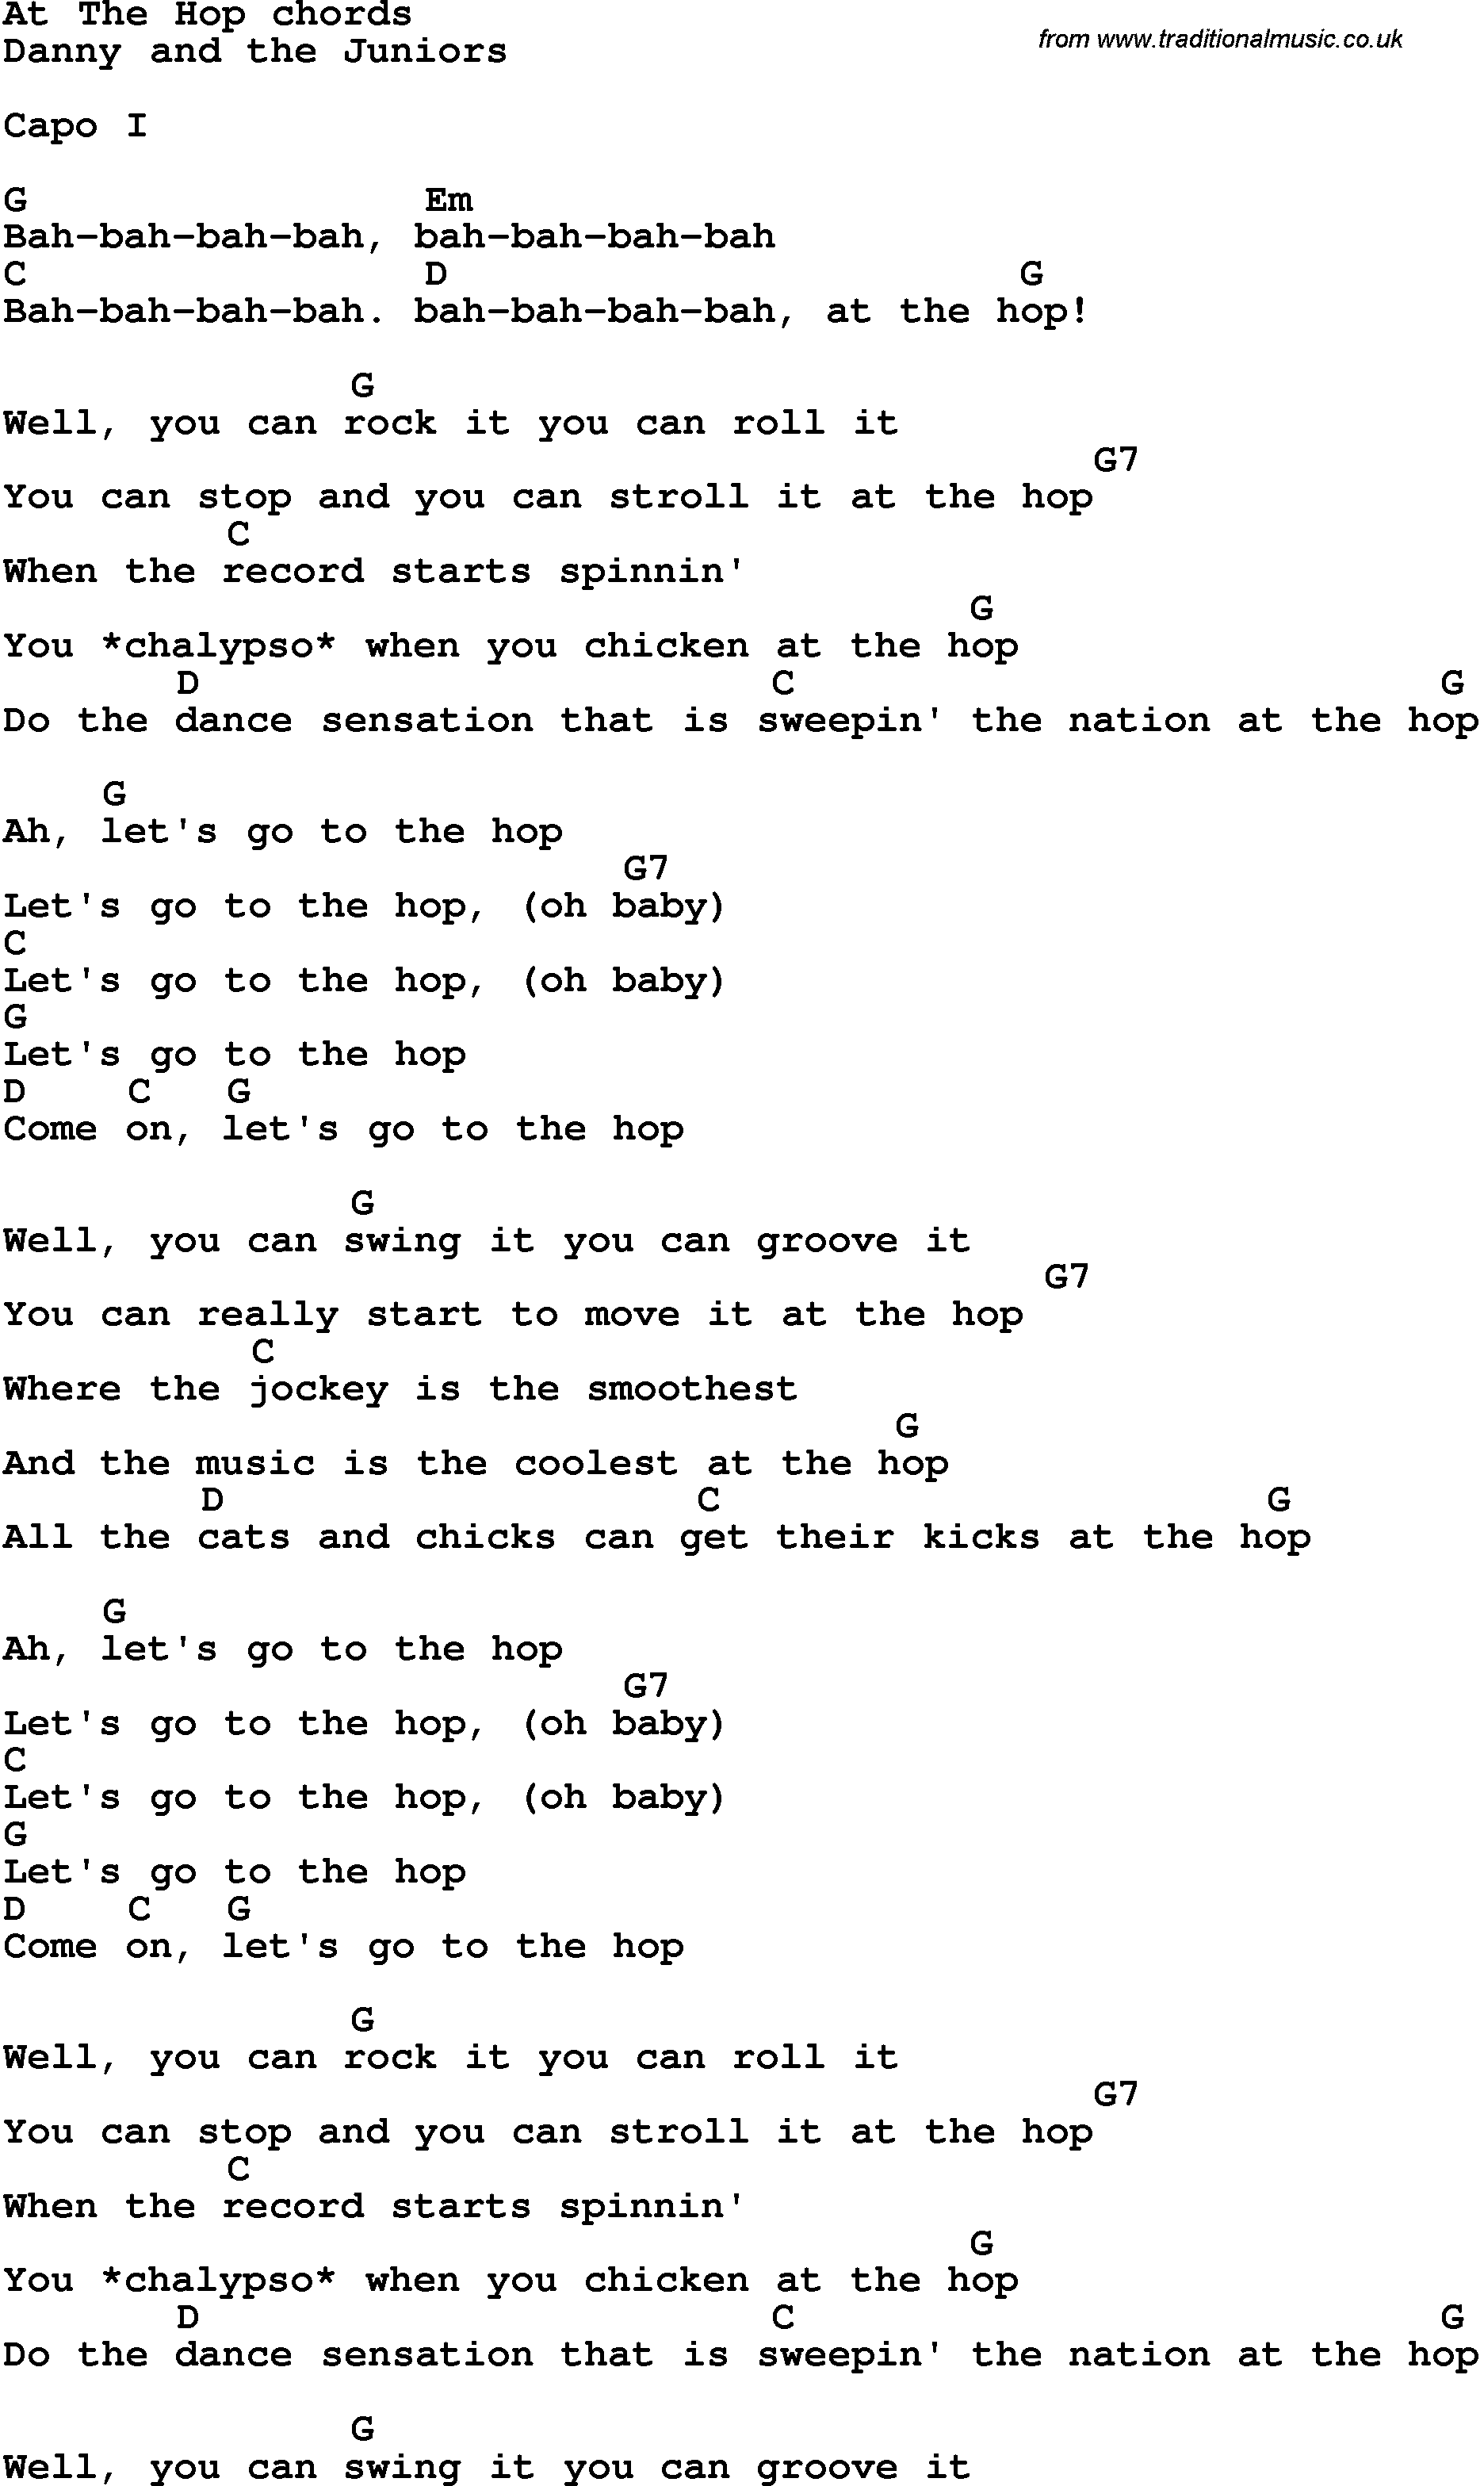 Song Lyrics With Guitar Chords For At The Hop Beginner Guitar